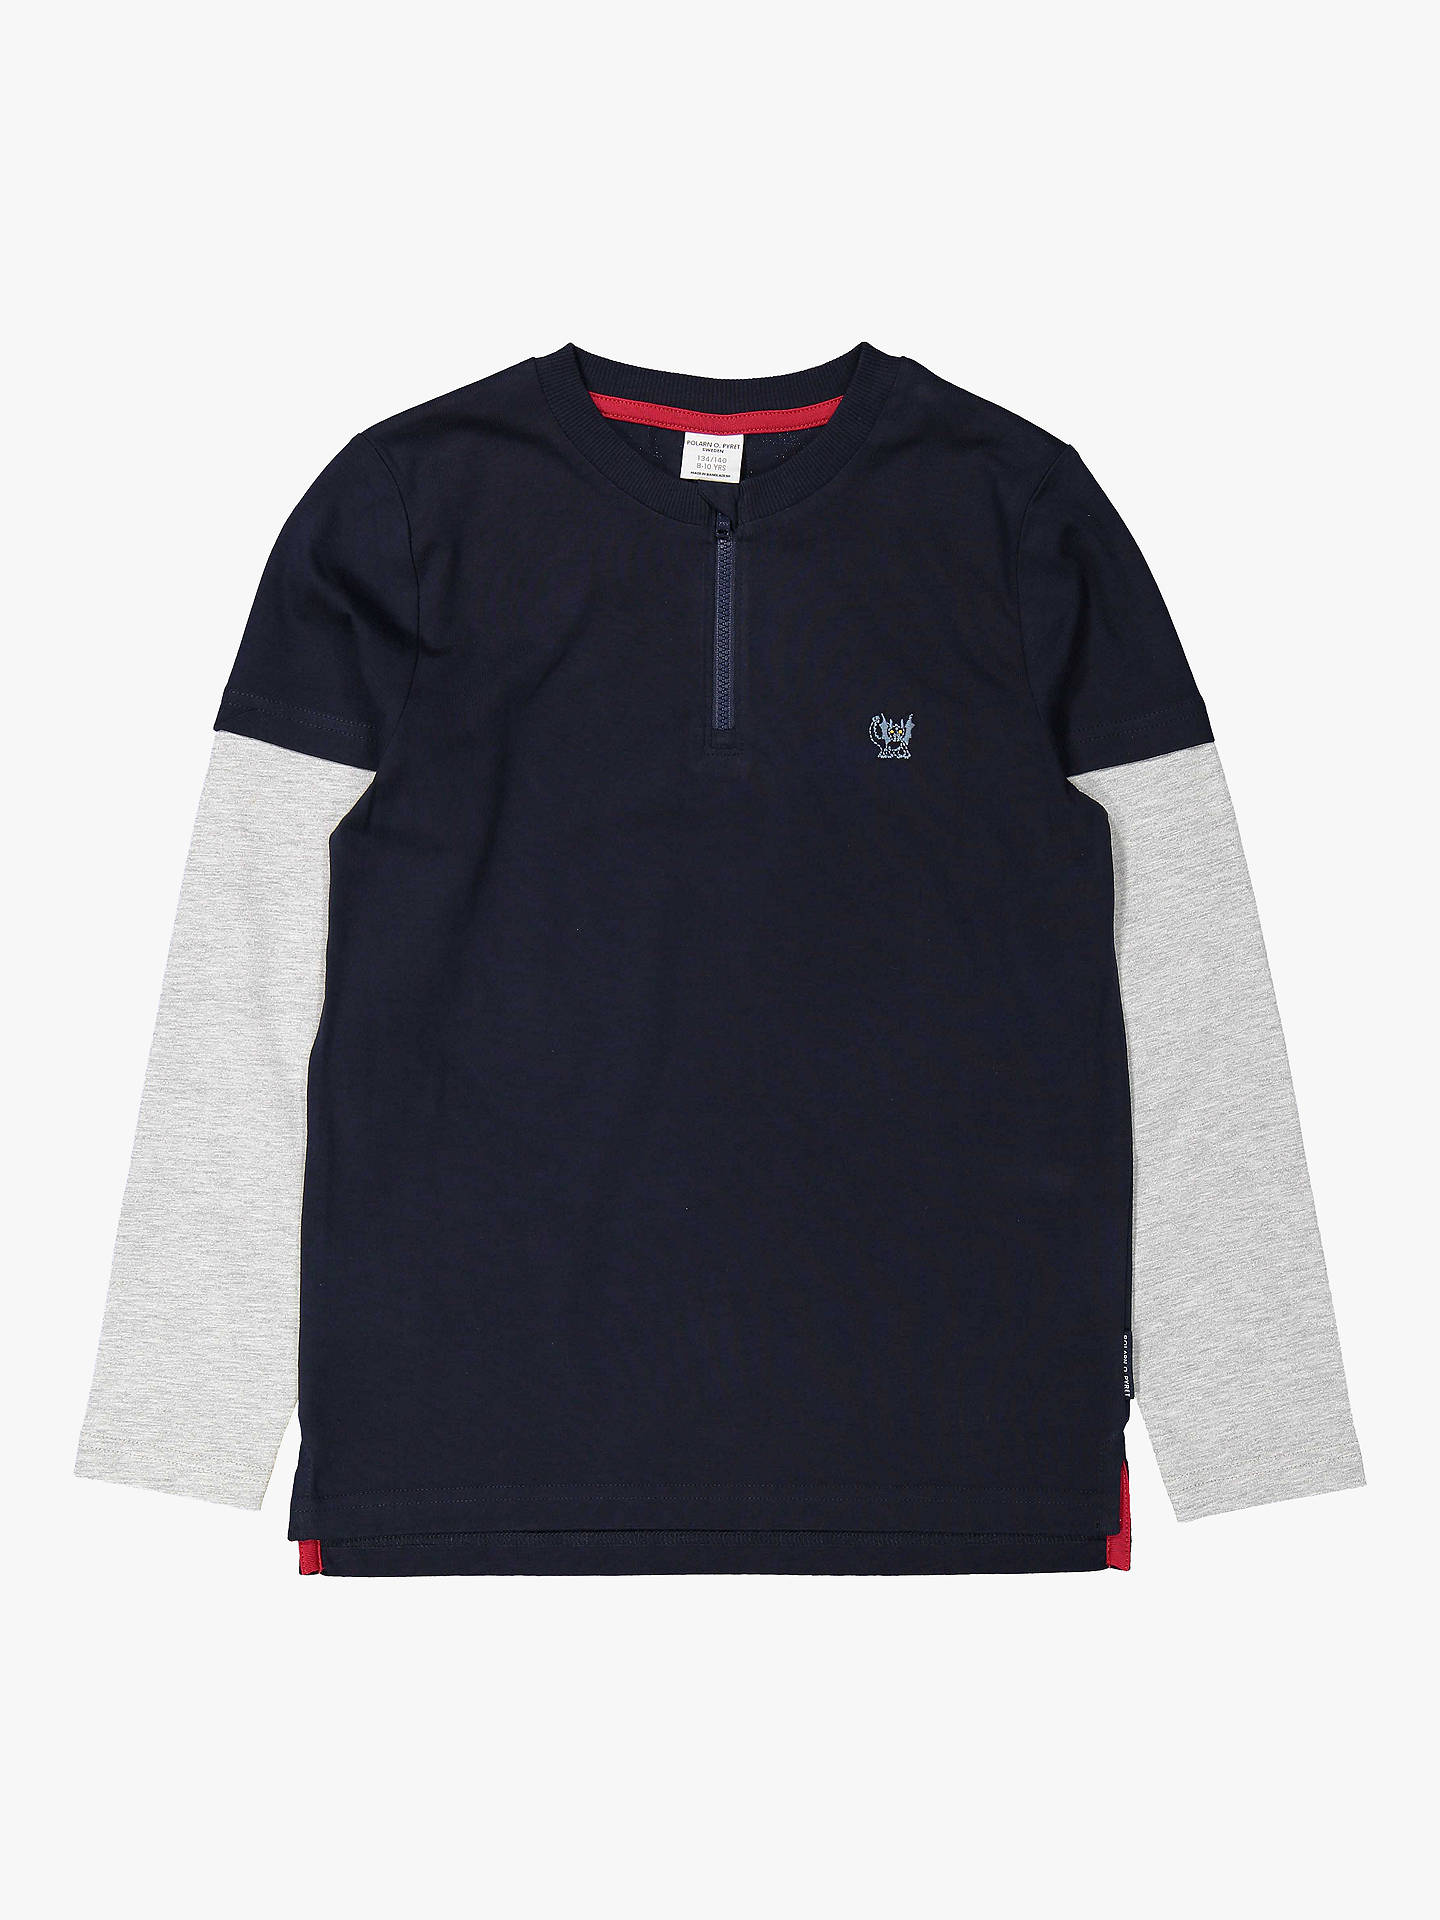 Buy Polarn O. Pyret Children's Zip Top, Blue, 6-8 years Online at johnlewis.com